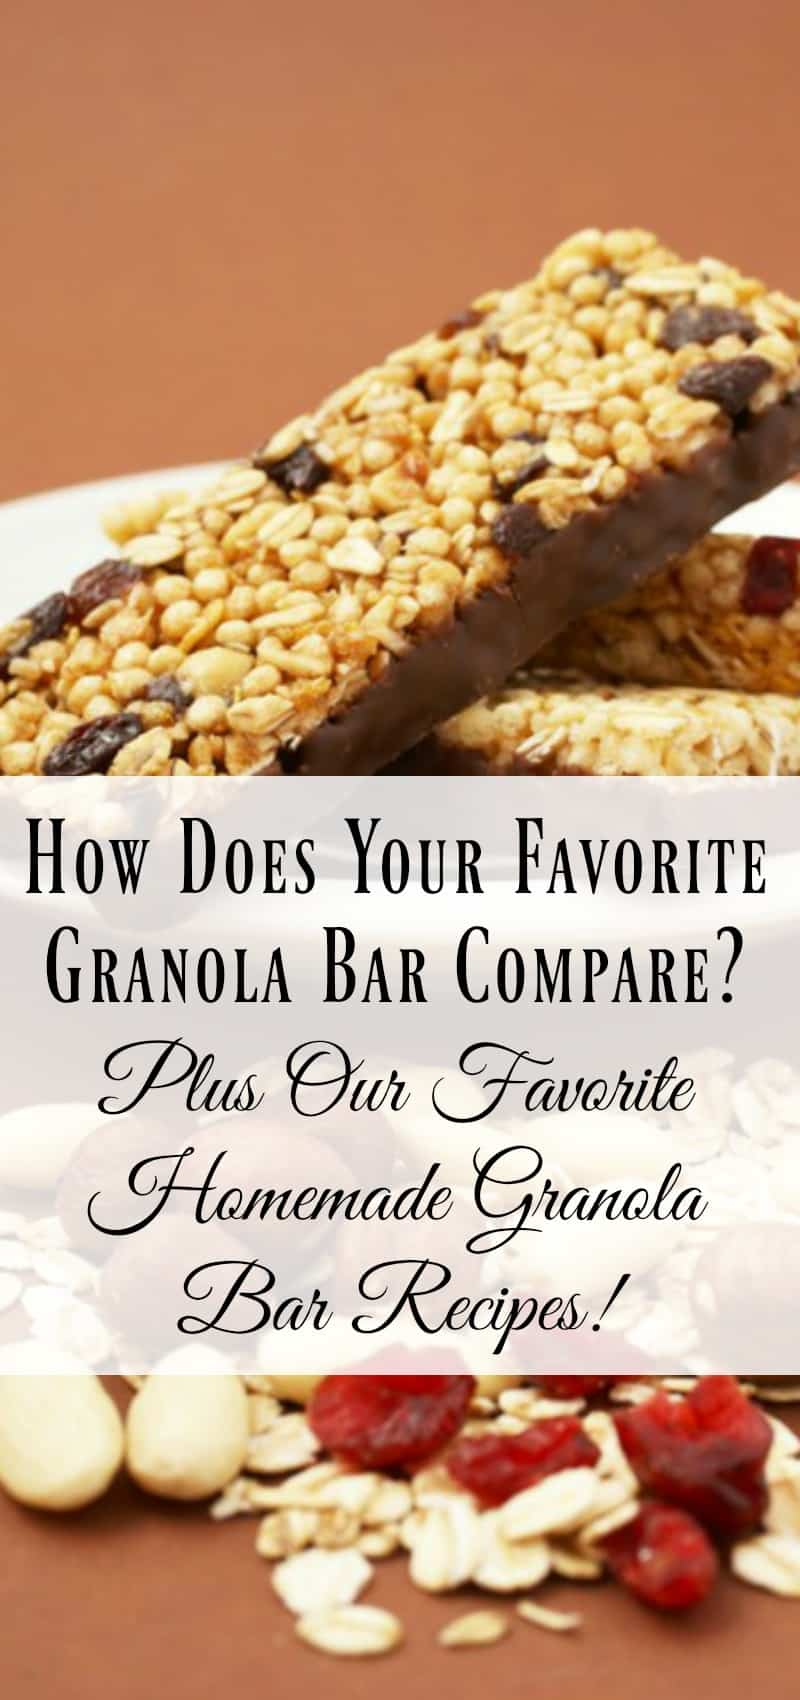 How Does Your Favorite Granola Bar Compare? Plus Our Favorite Homemade Granola Bar Recipes